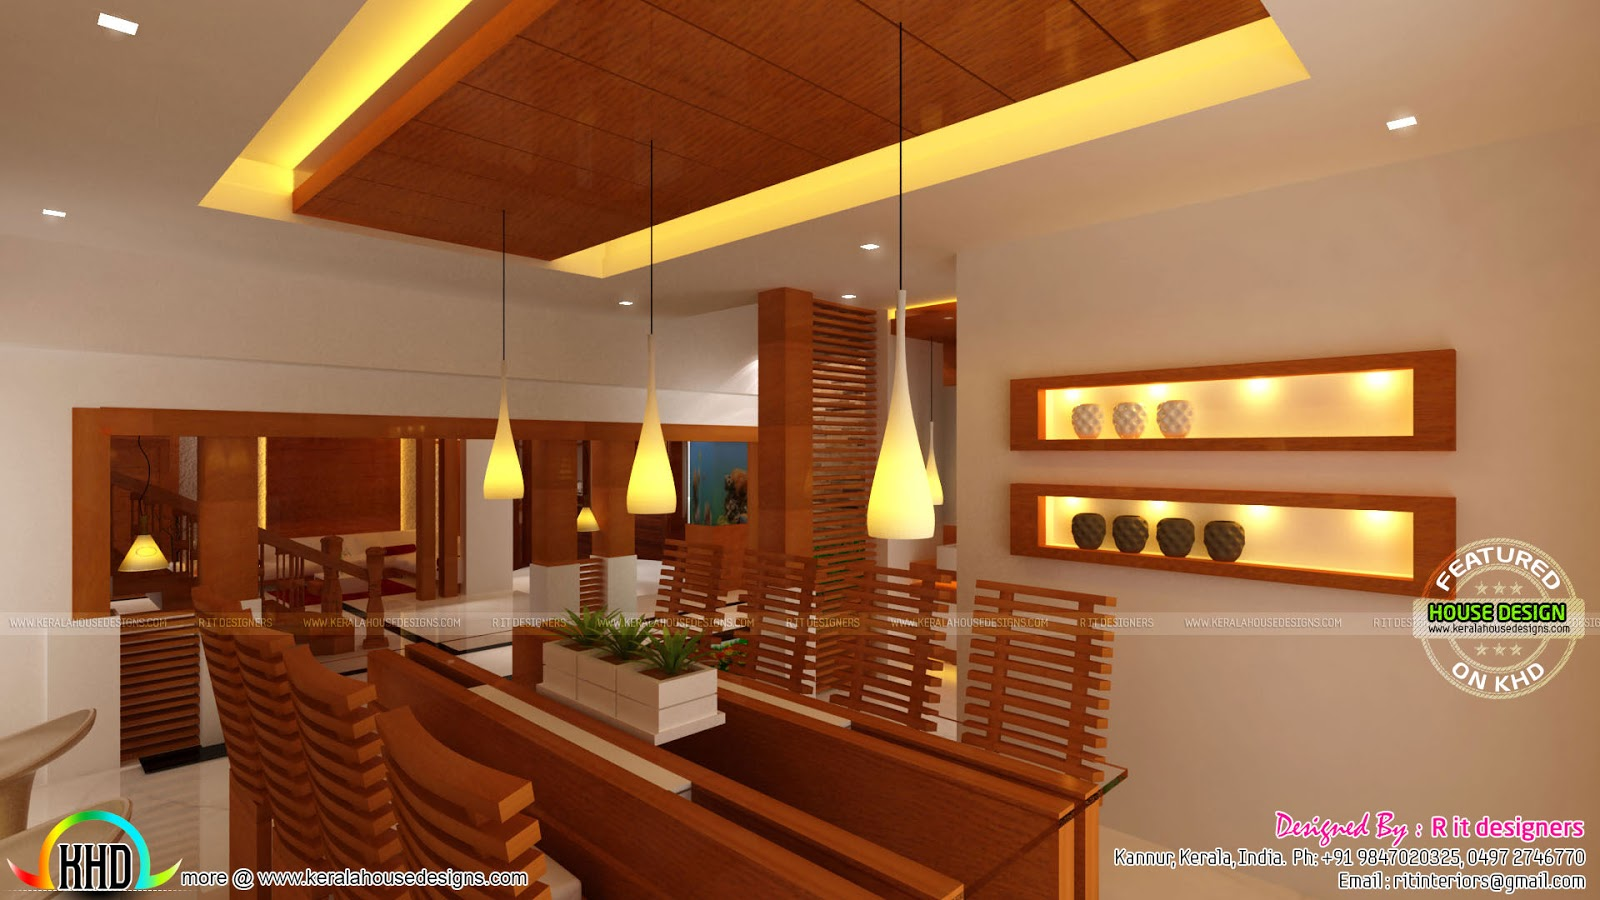 Wooden Finish Interior Designs Kerala Home Design And Floor Plans